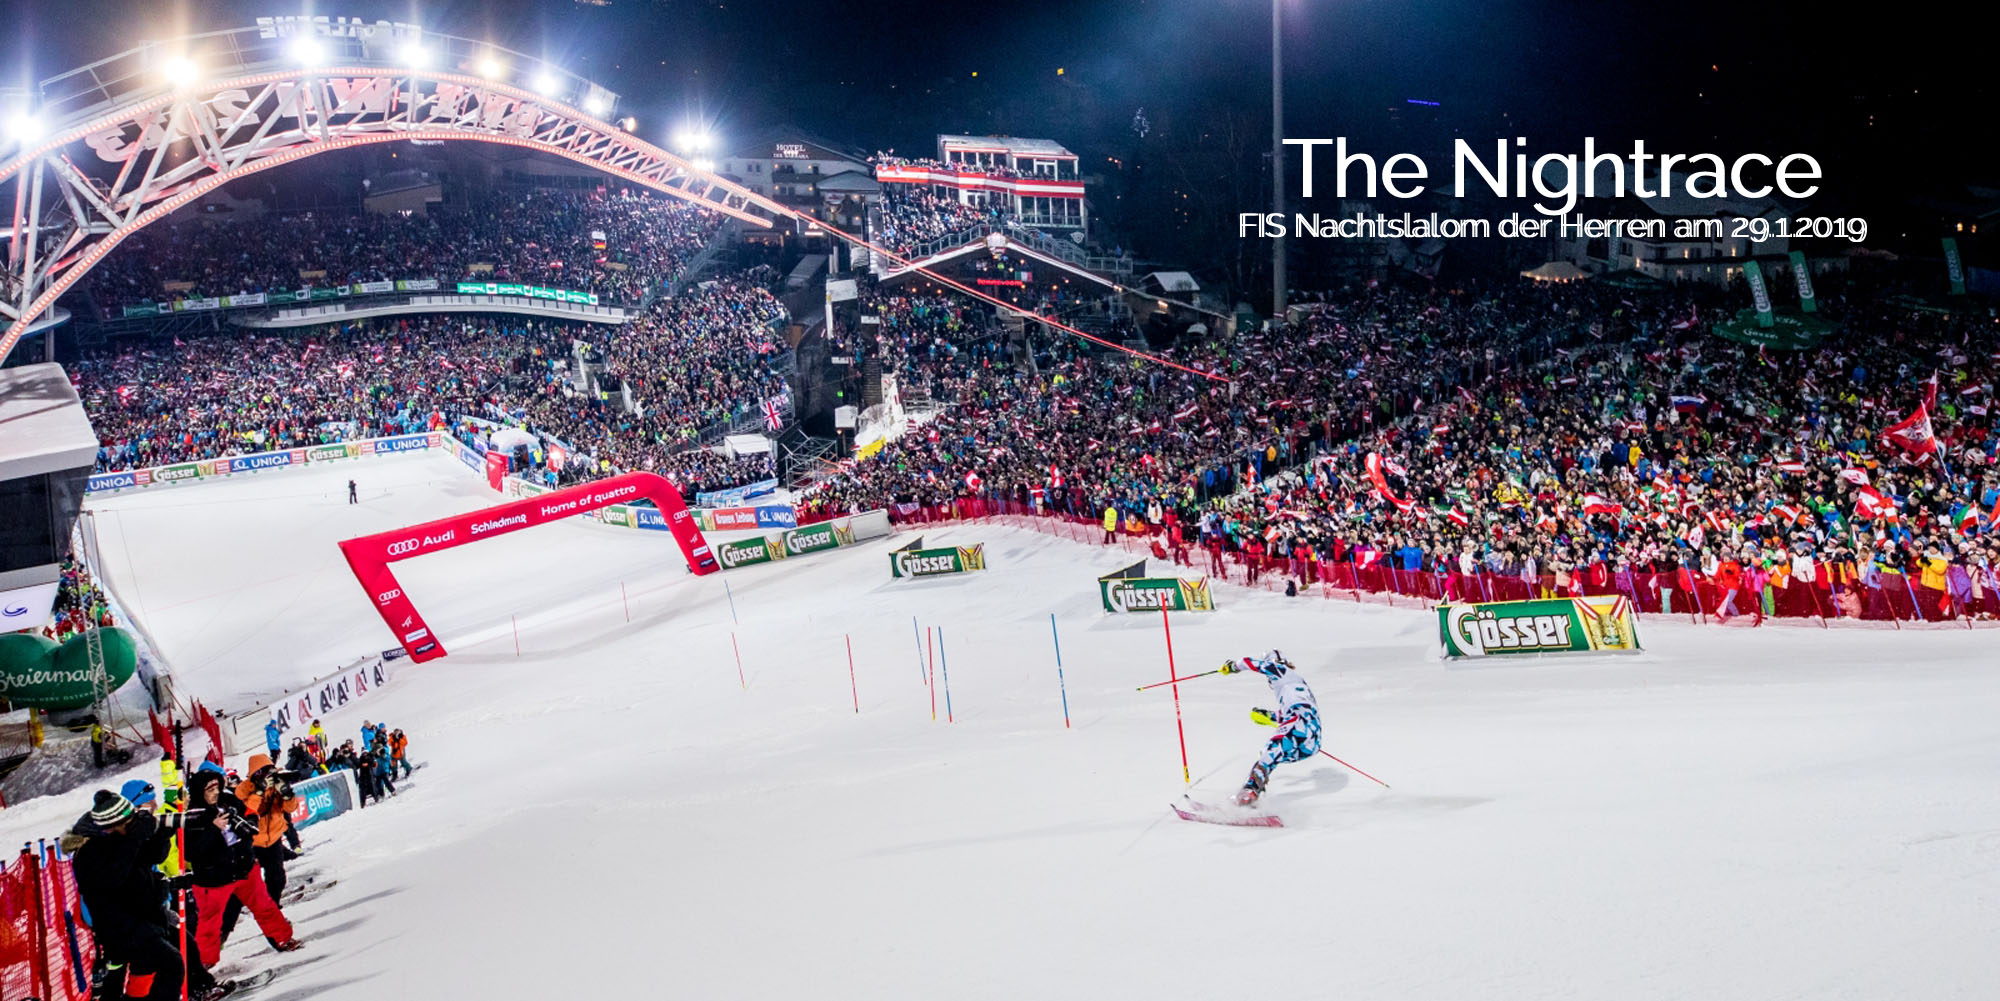 The Nightrace - FIS Nachtsalom der Herren 2019 in Schladming - Planai